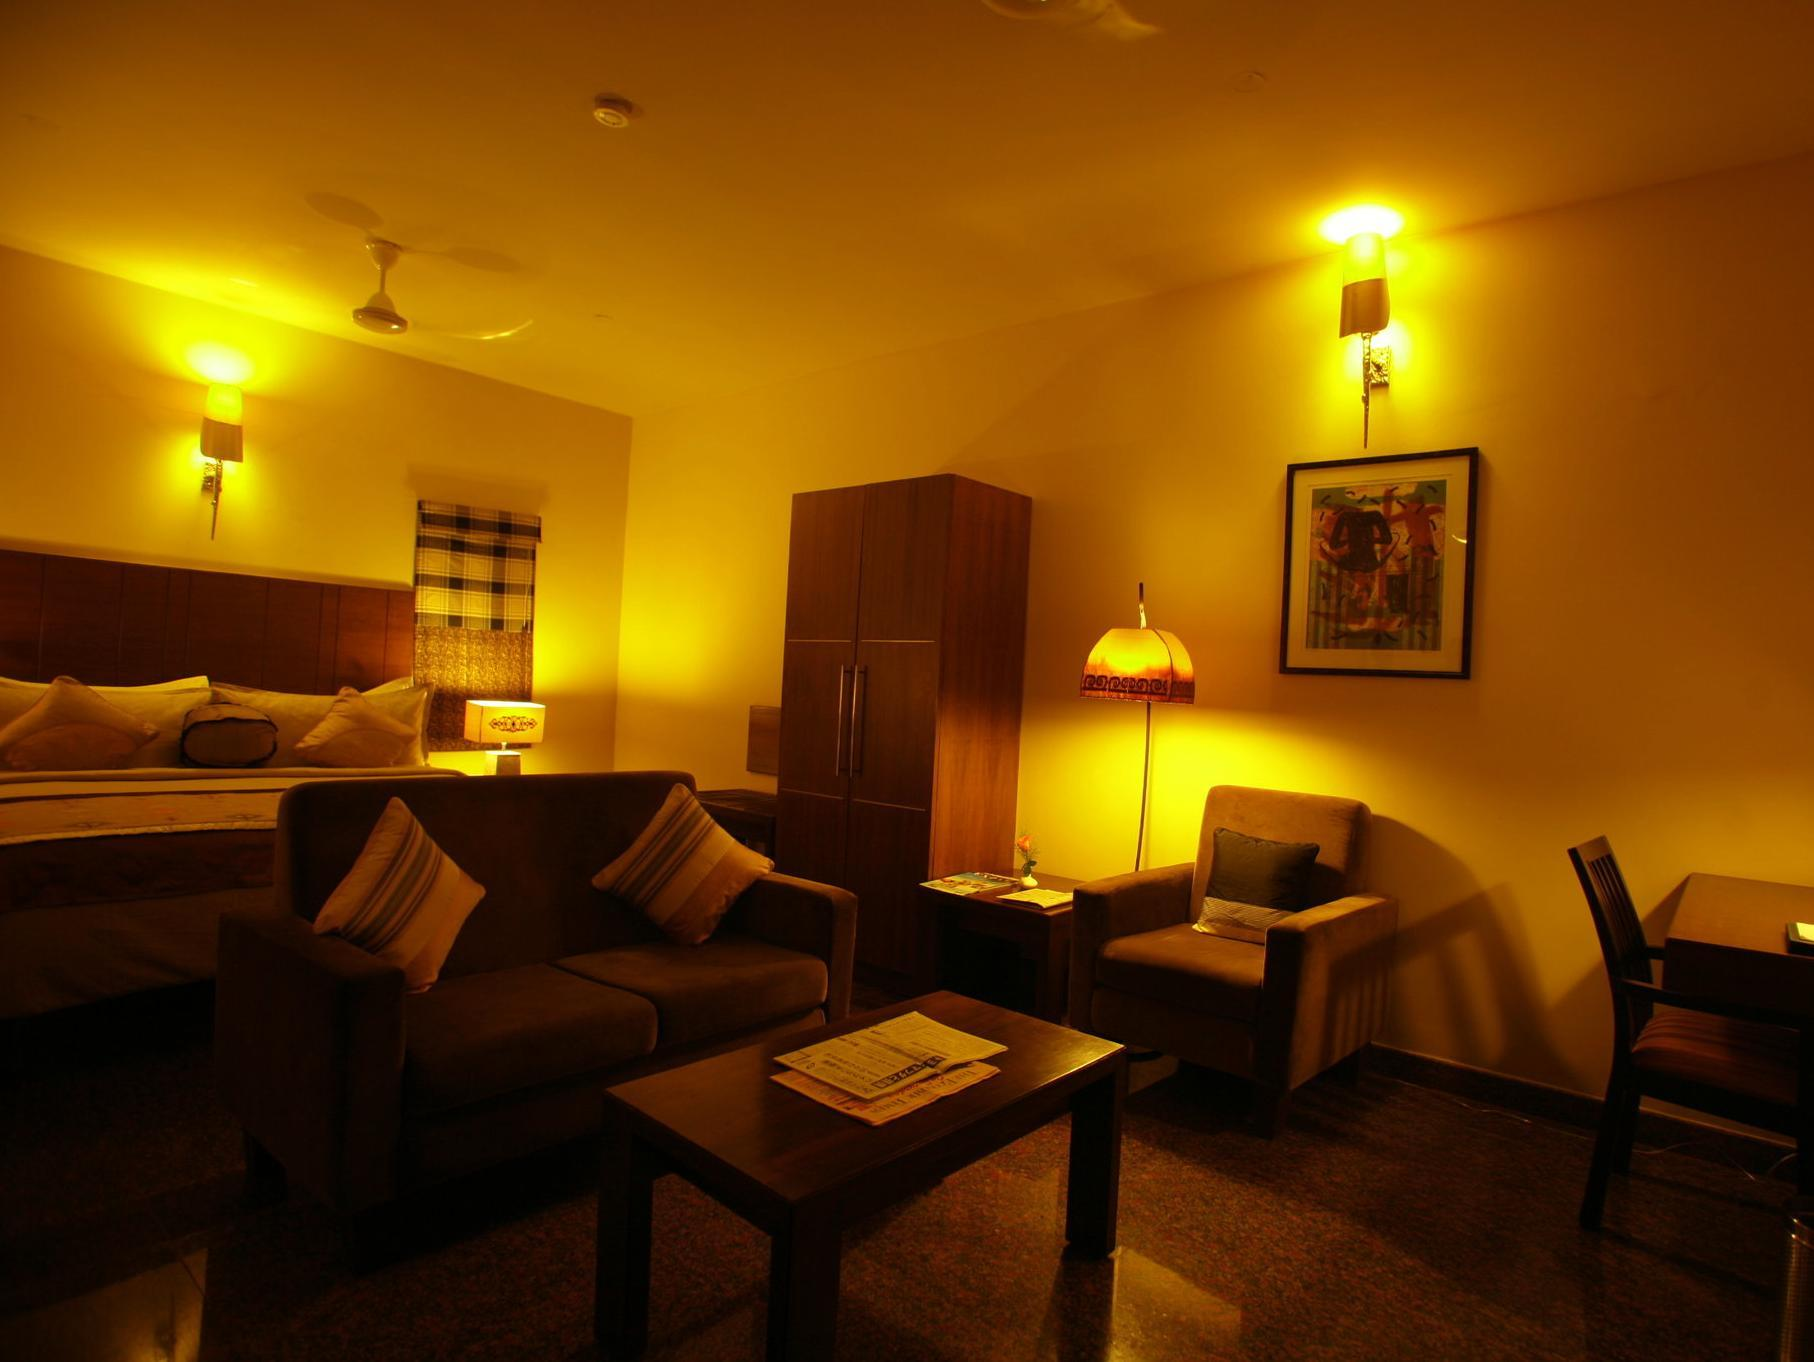 Justa The Residence MG Road - Hotel and accommodation in India in Bengaluru / Bangalore